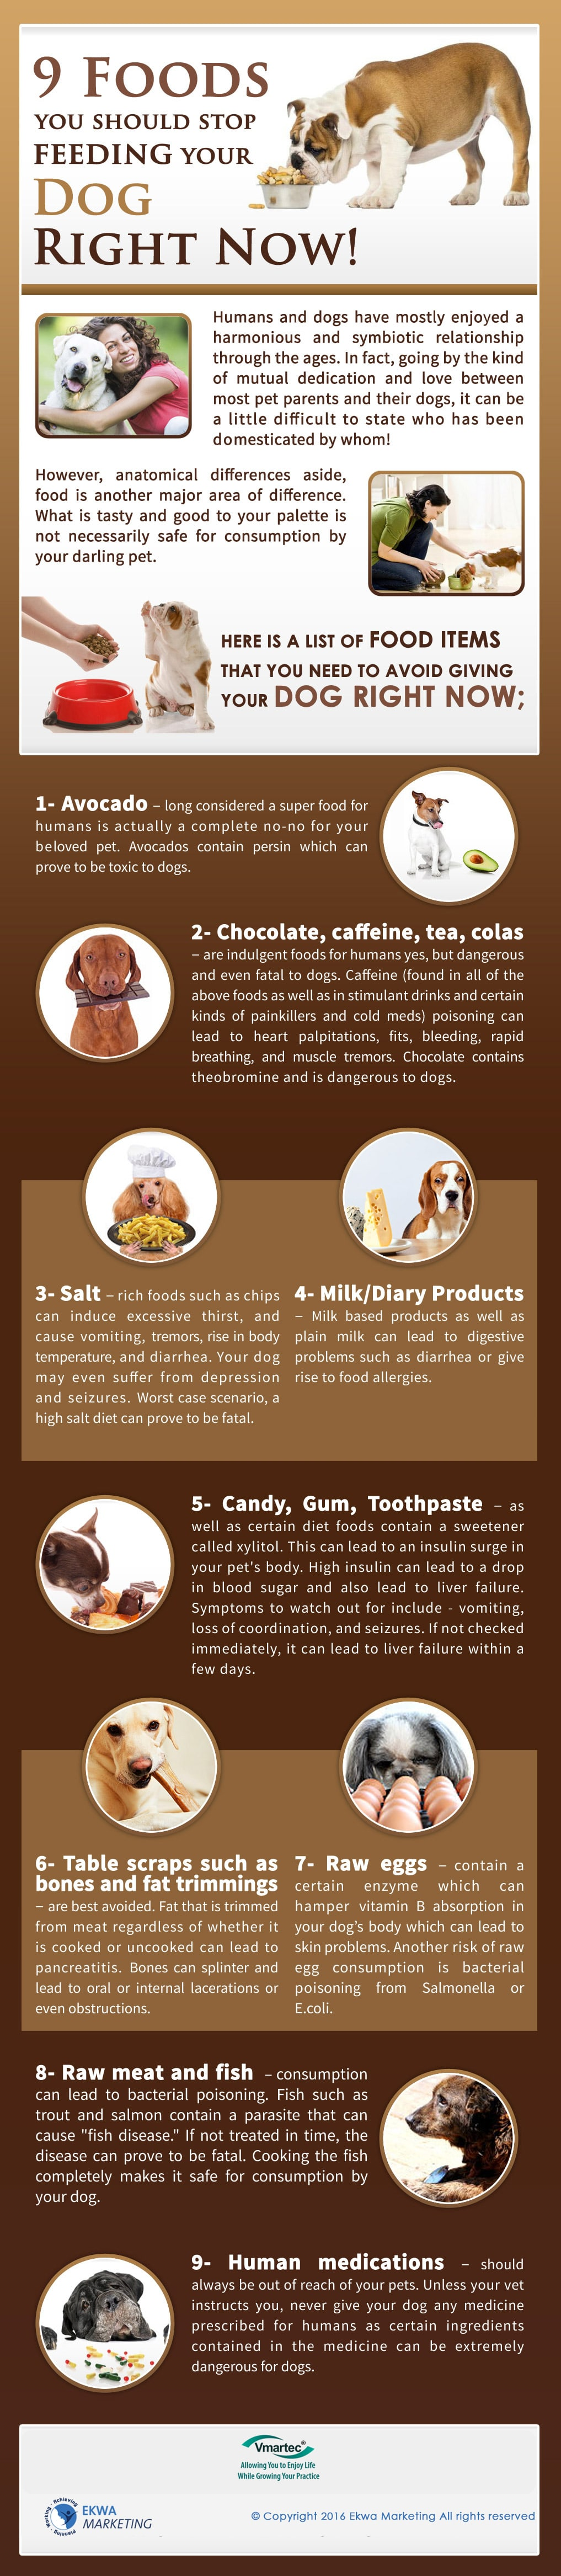 Vmartec, 9 foods you should stop feeding your dog now